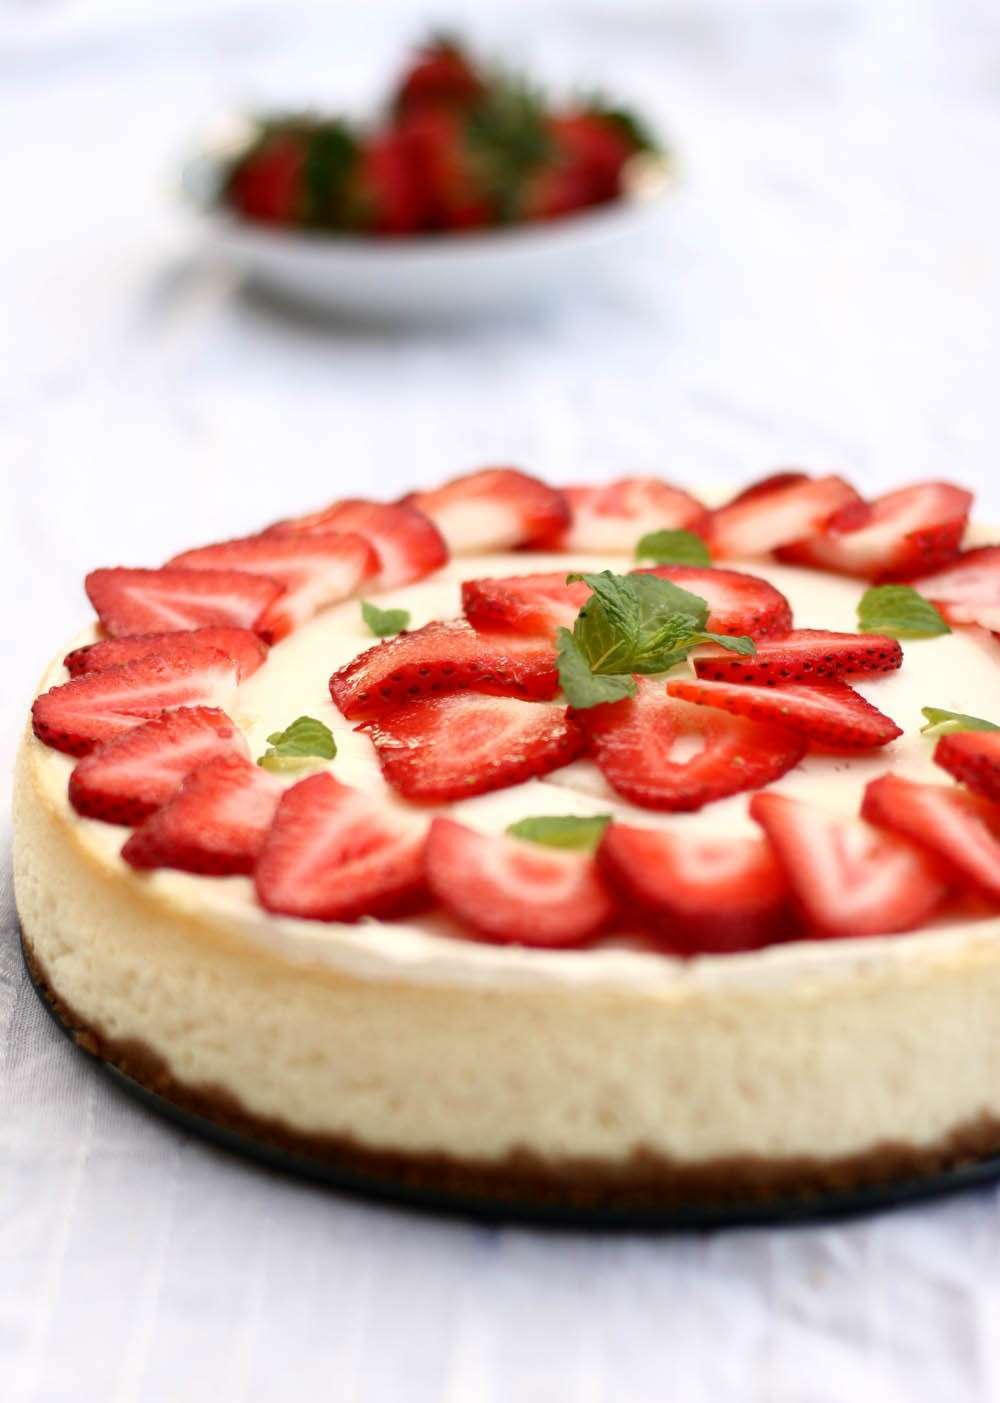 Cheesecake decorazione fragole